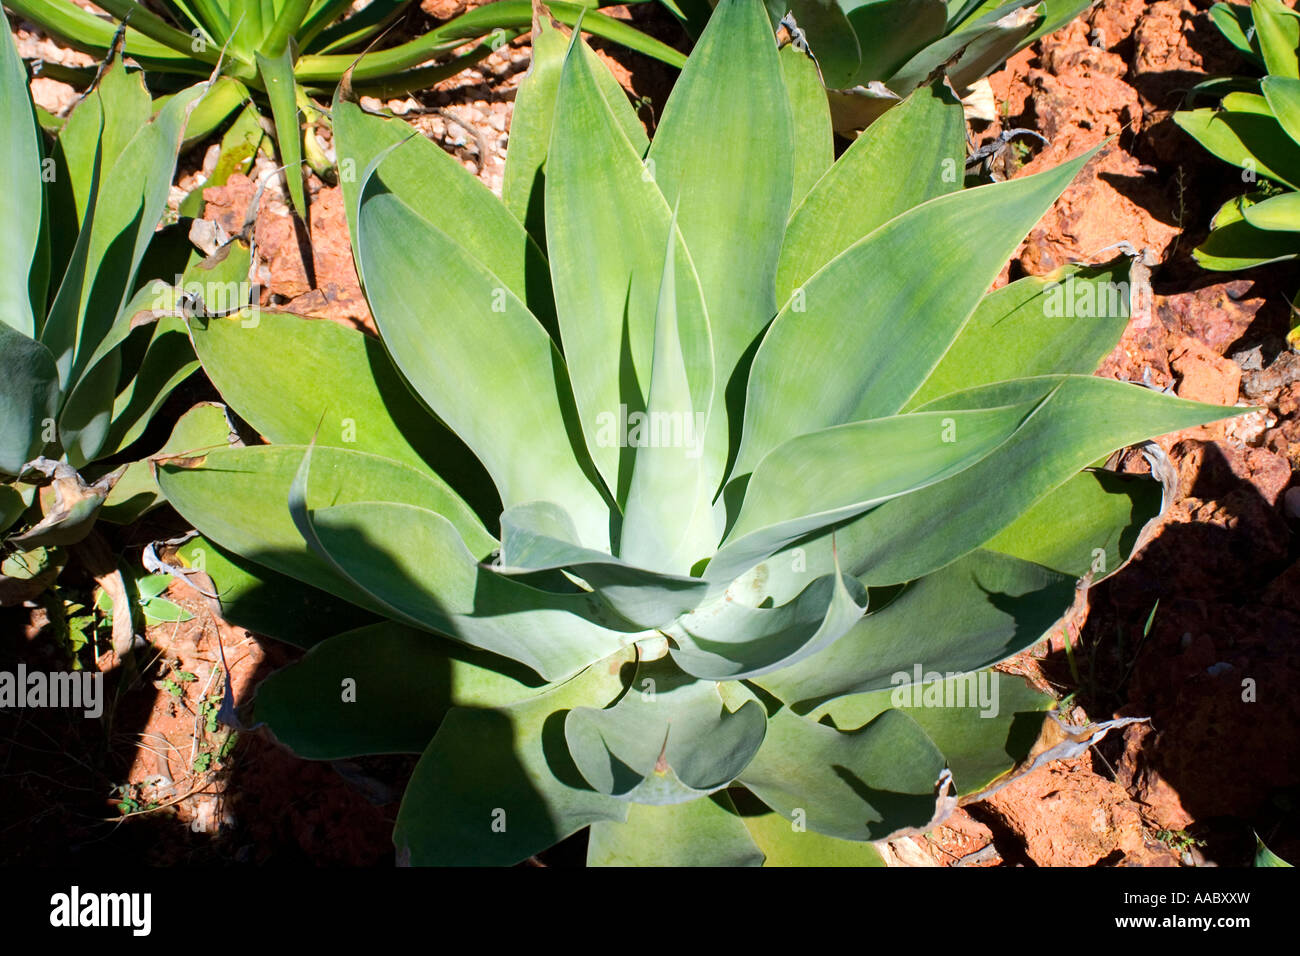 Agave Attenuata Lion's Tail or Swan's Neck or Foxtail - Stock Image